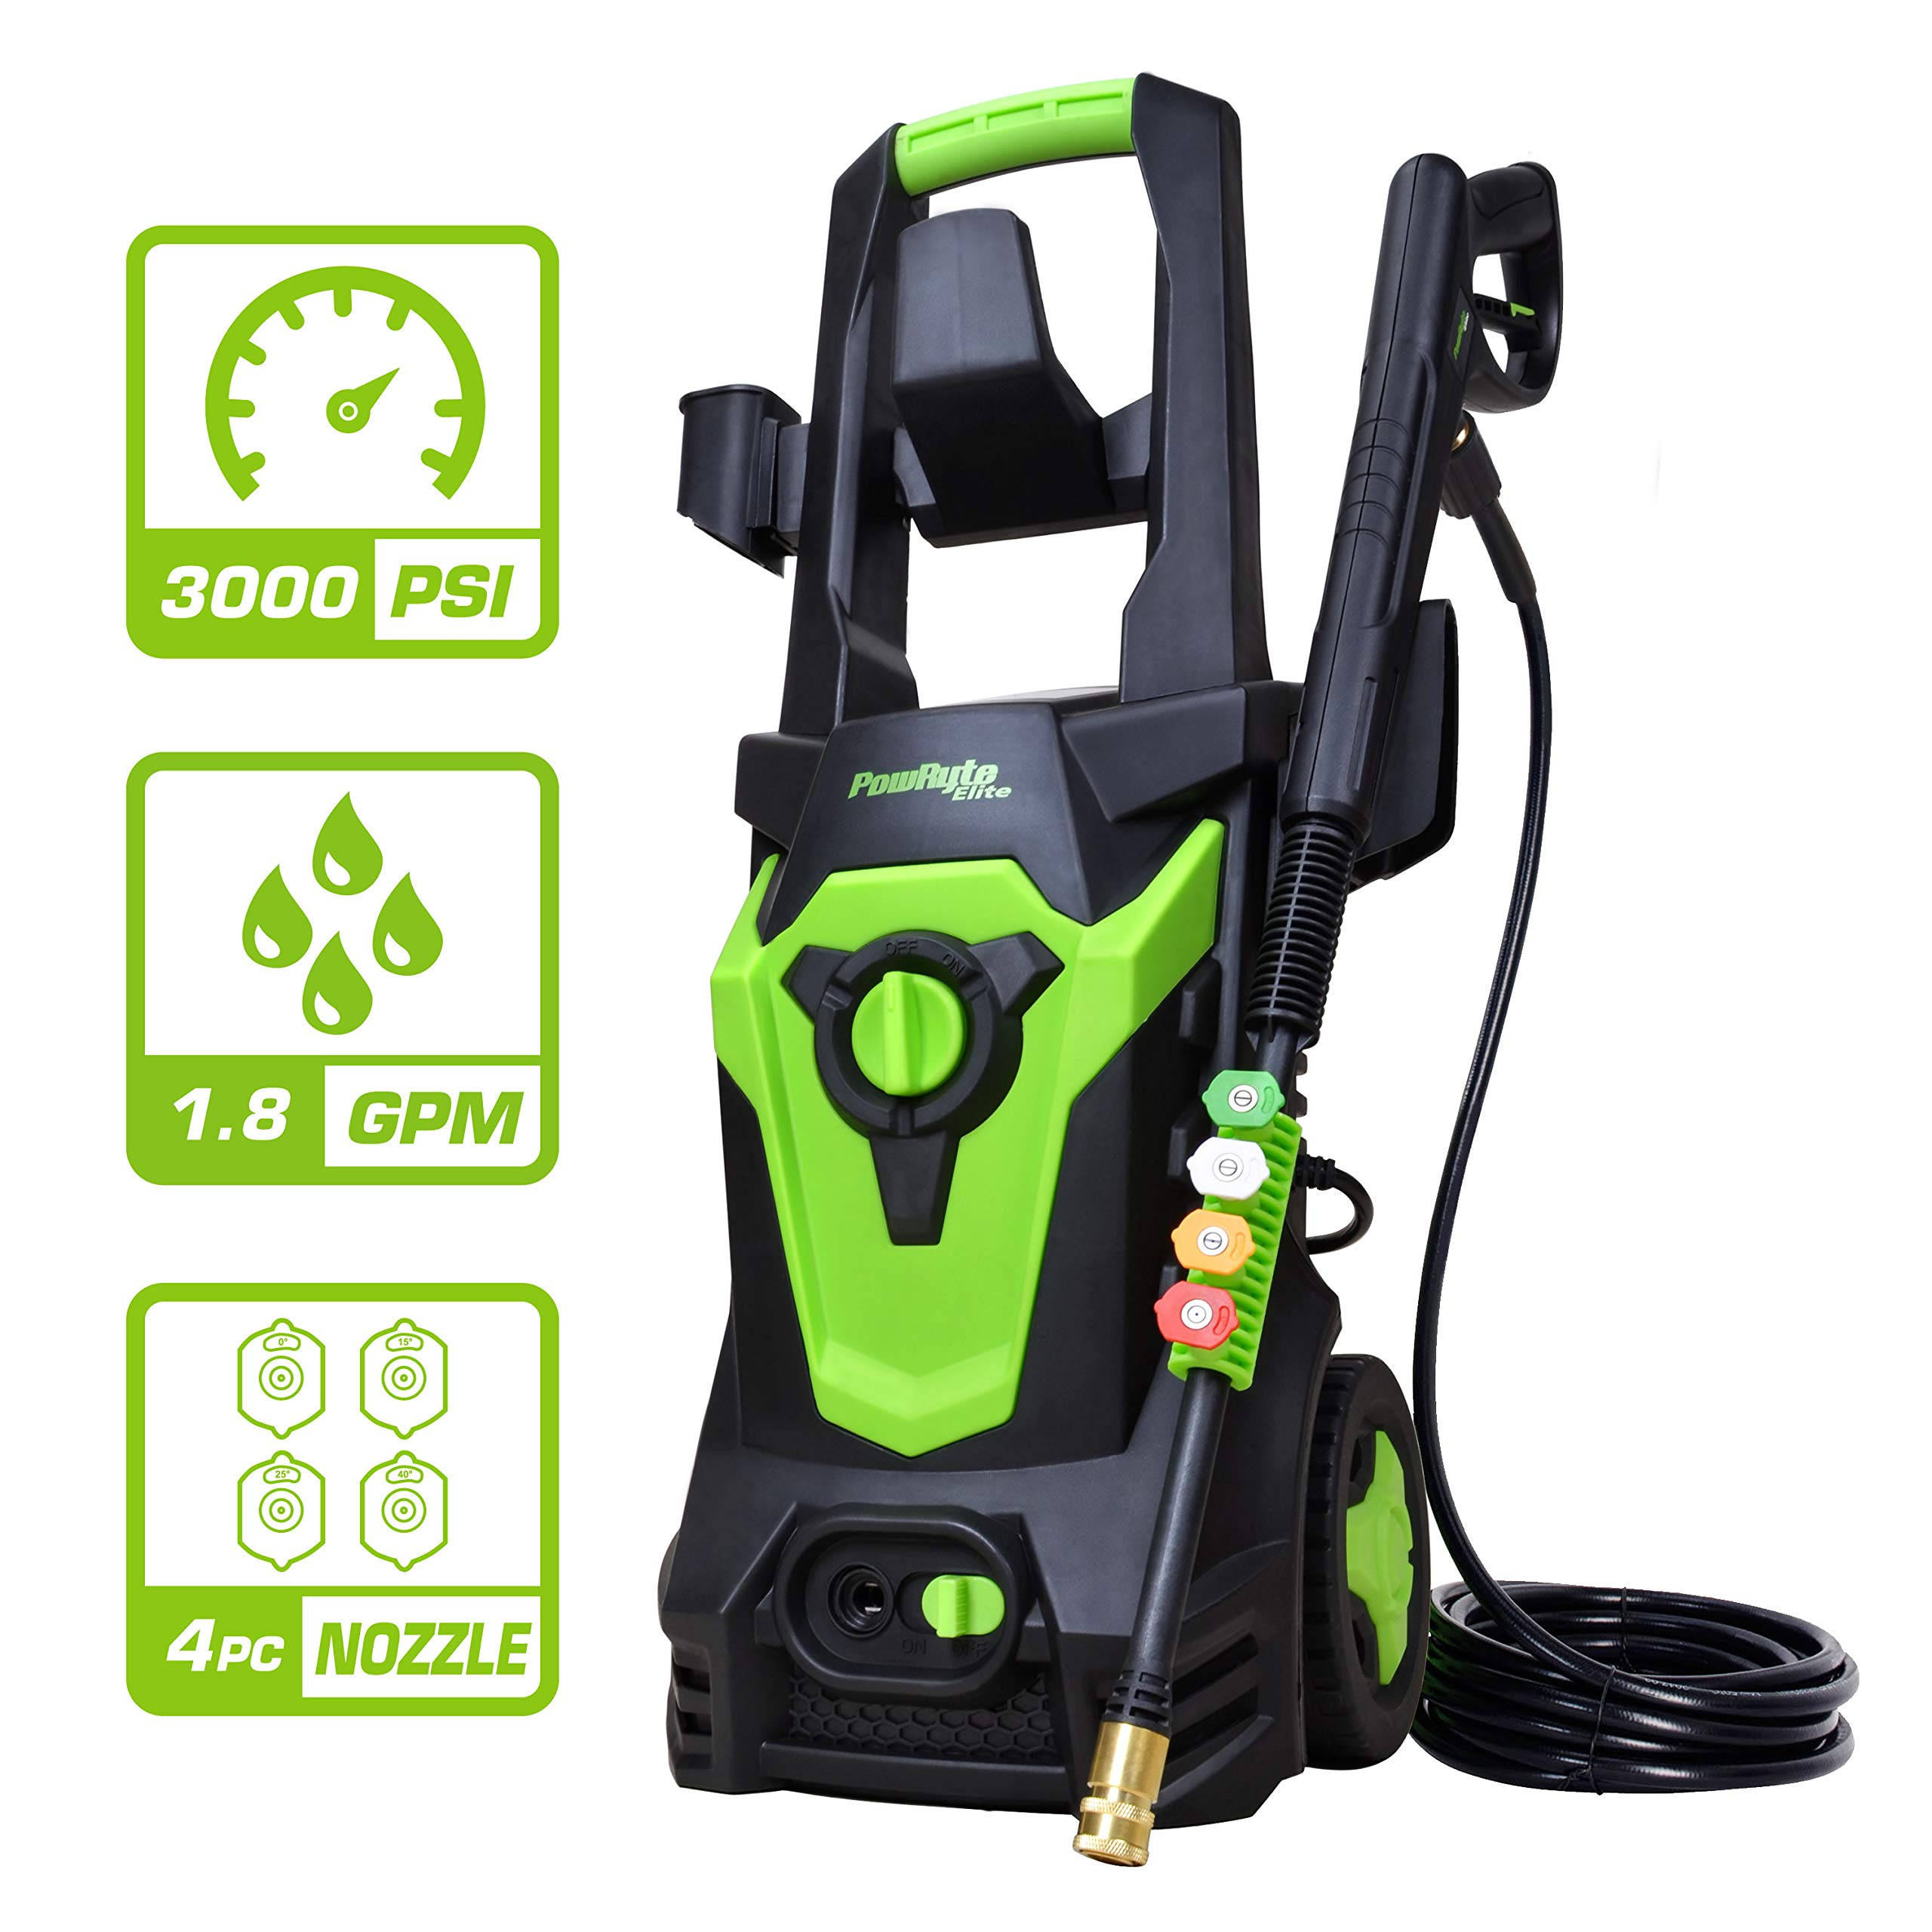 Azoran Electric Pressure Washer, Electric Power Washer with 4 Quick-Connect Spray Tips, Car Washer Machine - 3000 PSI 1.8 GPM